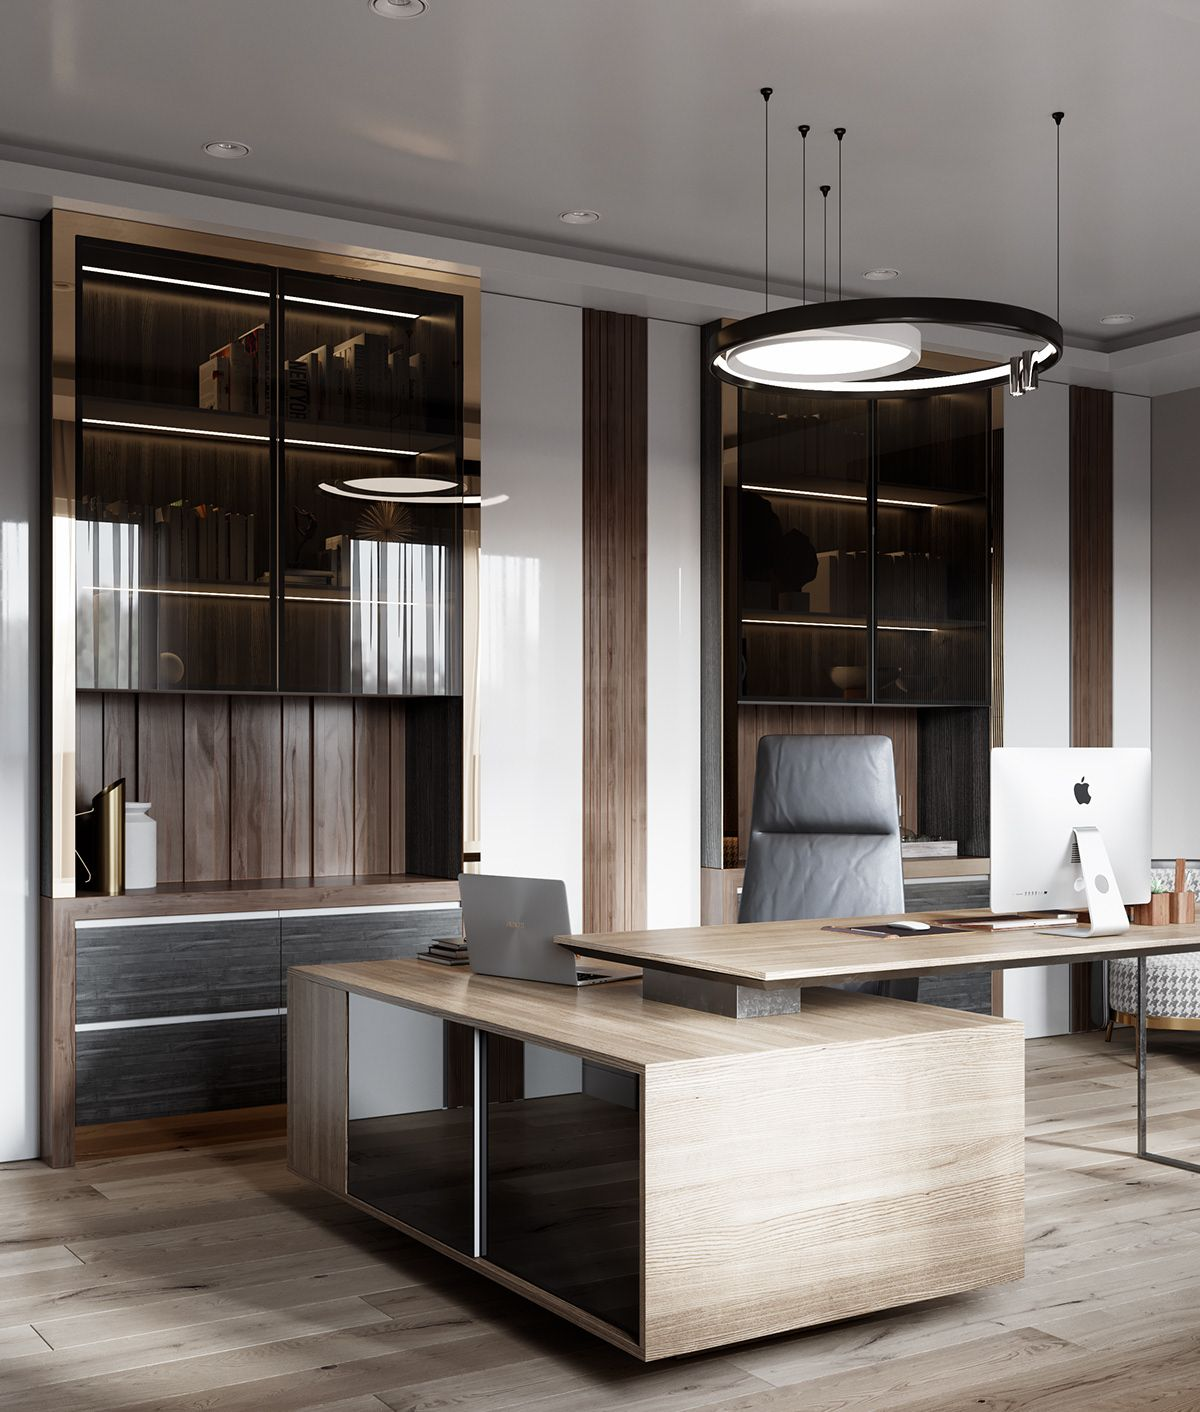 Interior Designers Of Canada: CGI:House Project In Canada On Behance